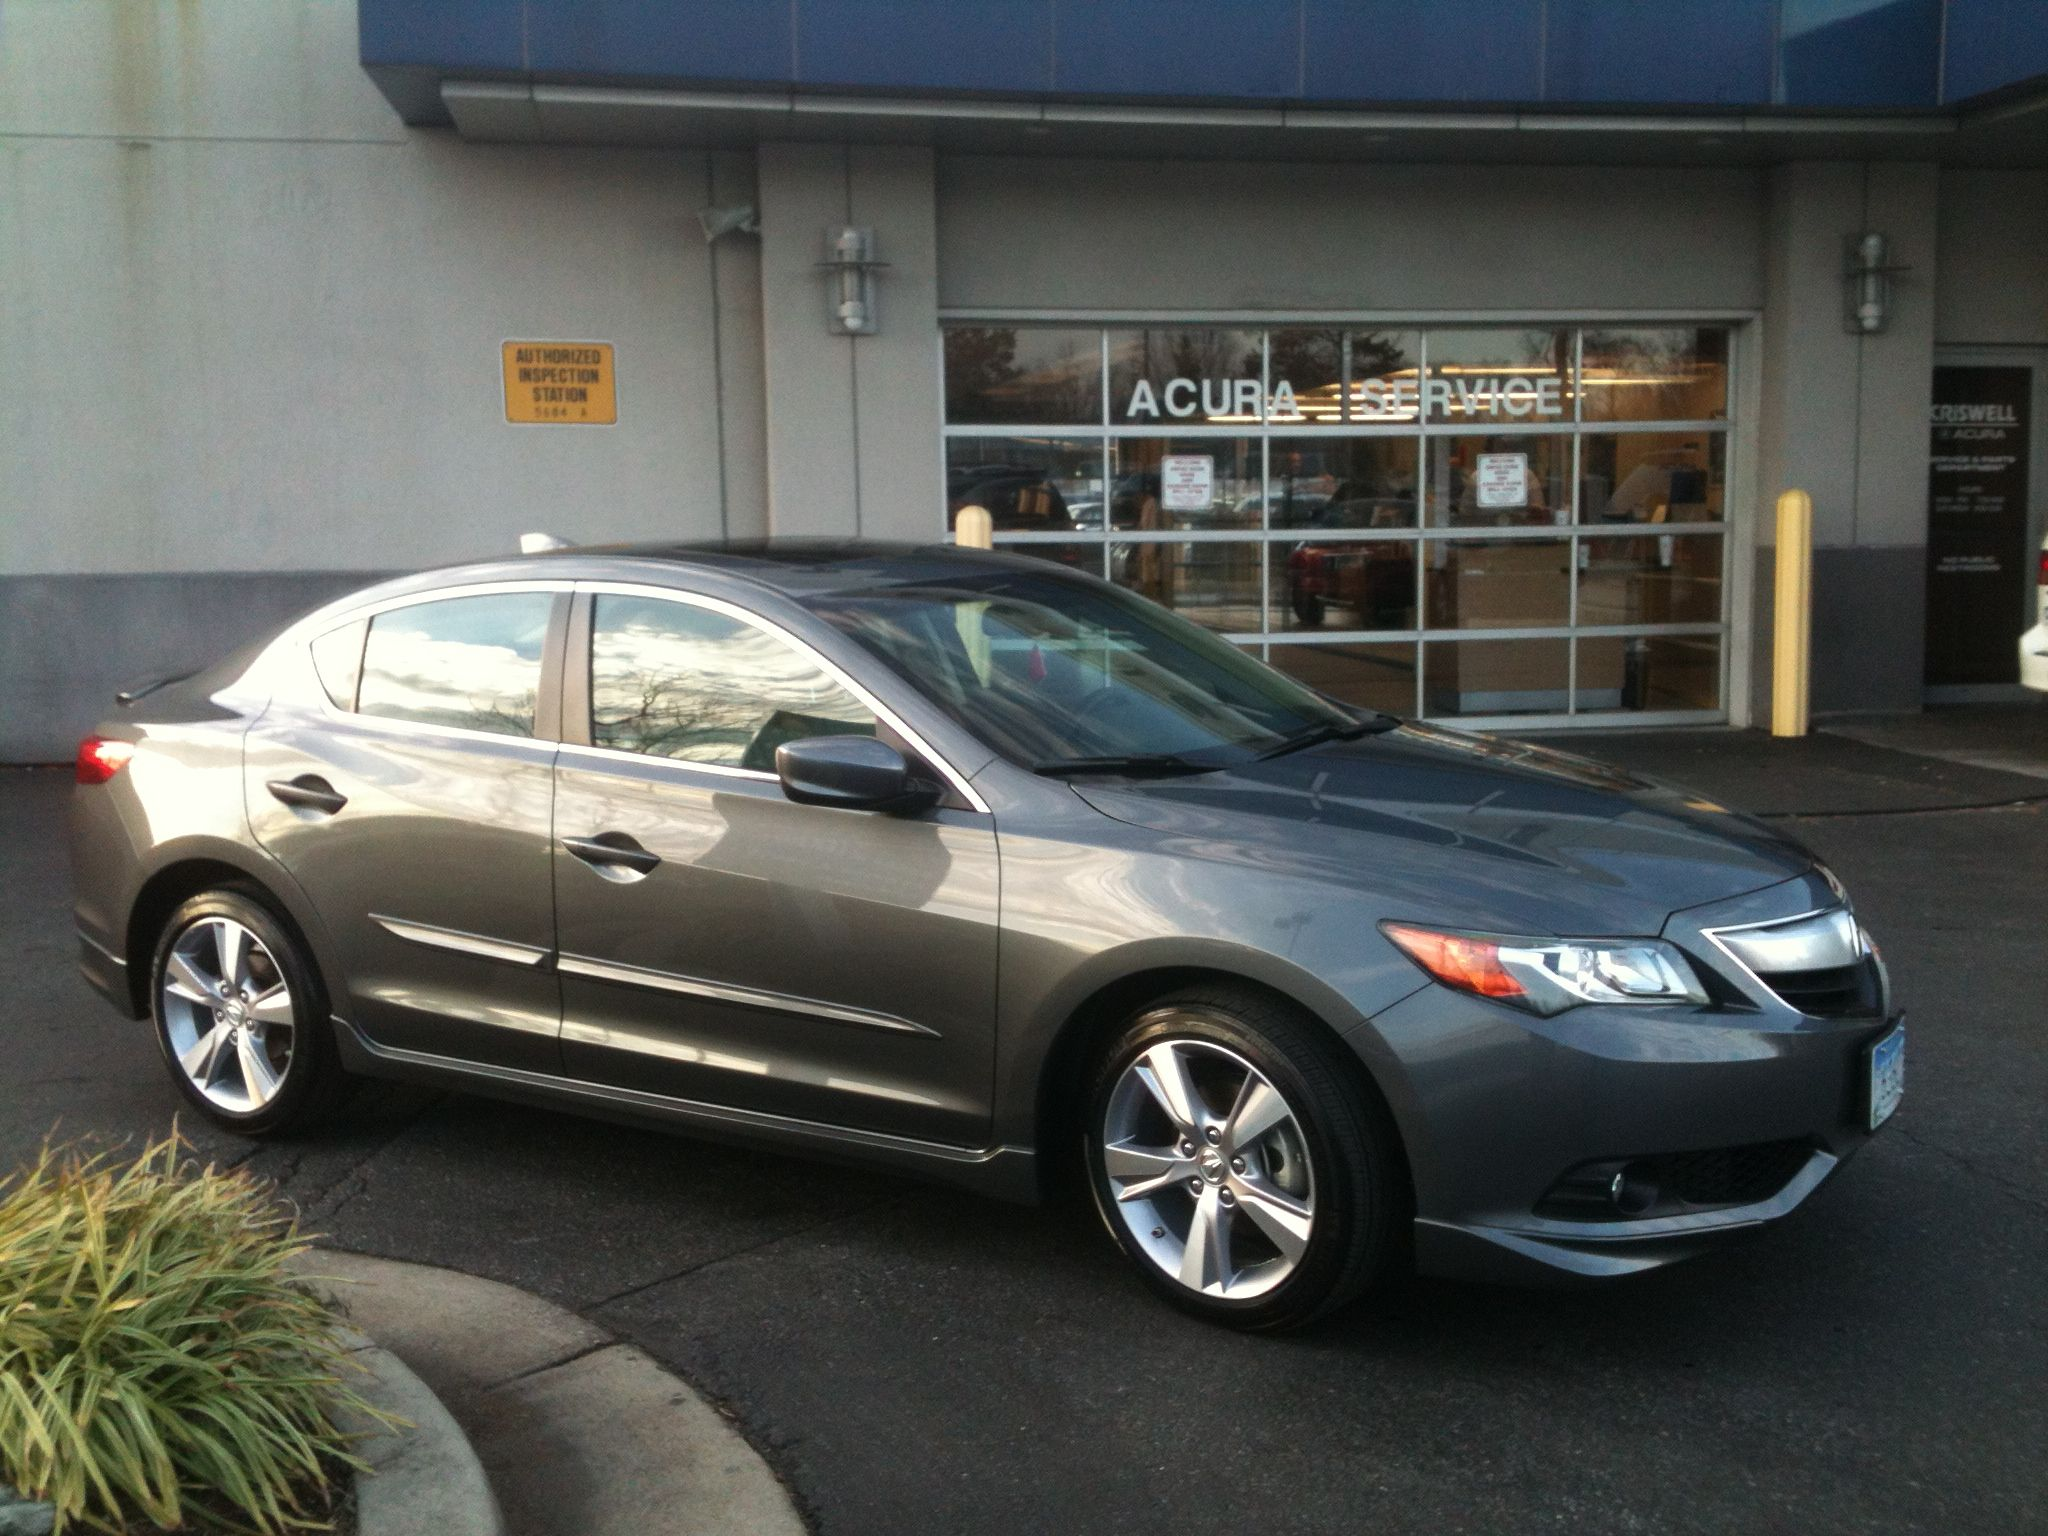 2013 Acura Ilx Shown With Side Skirts Body Side Moldings Deck Lid